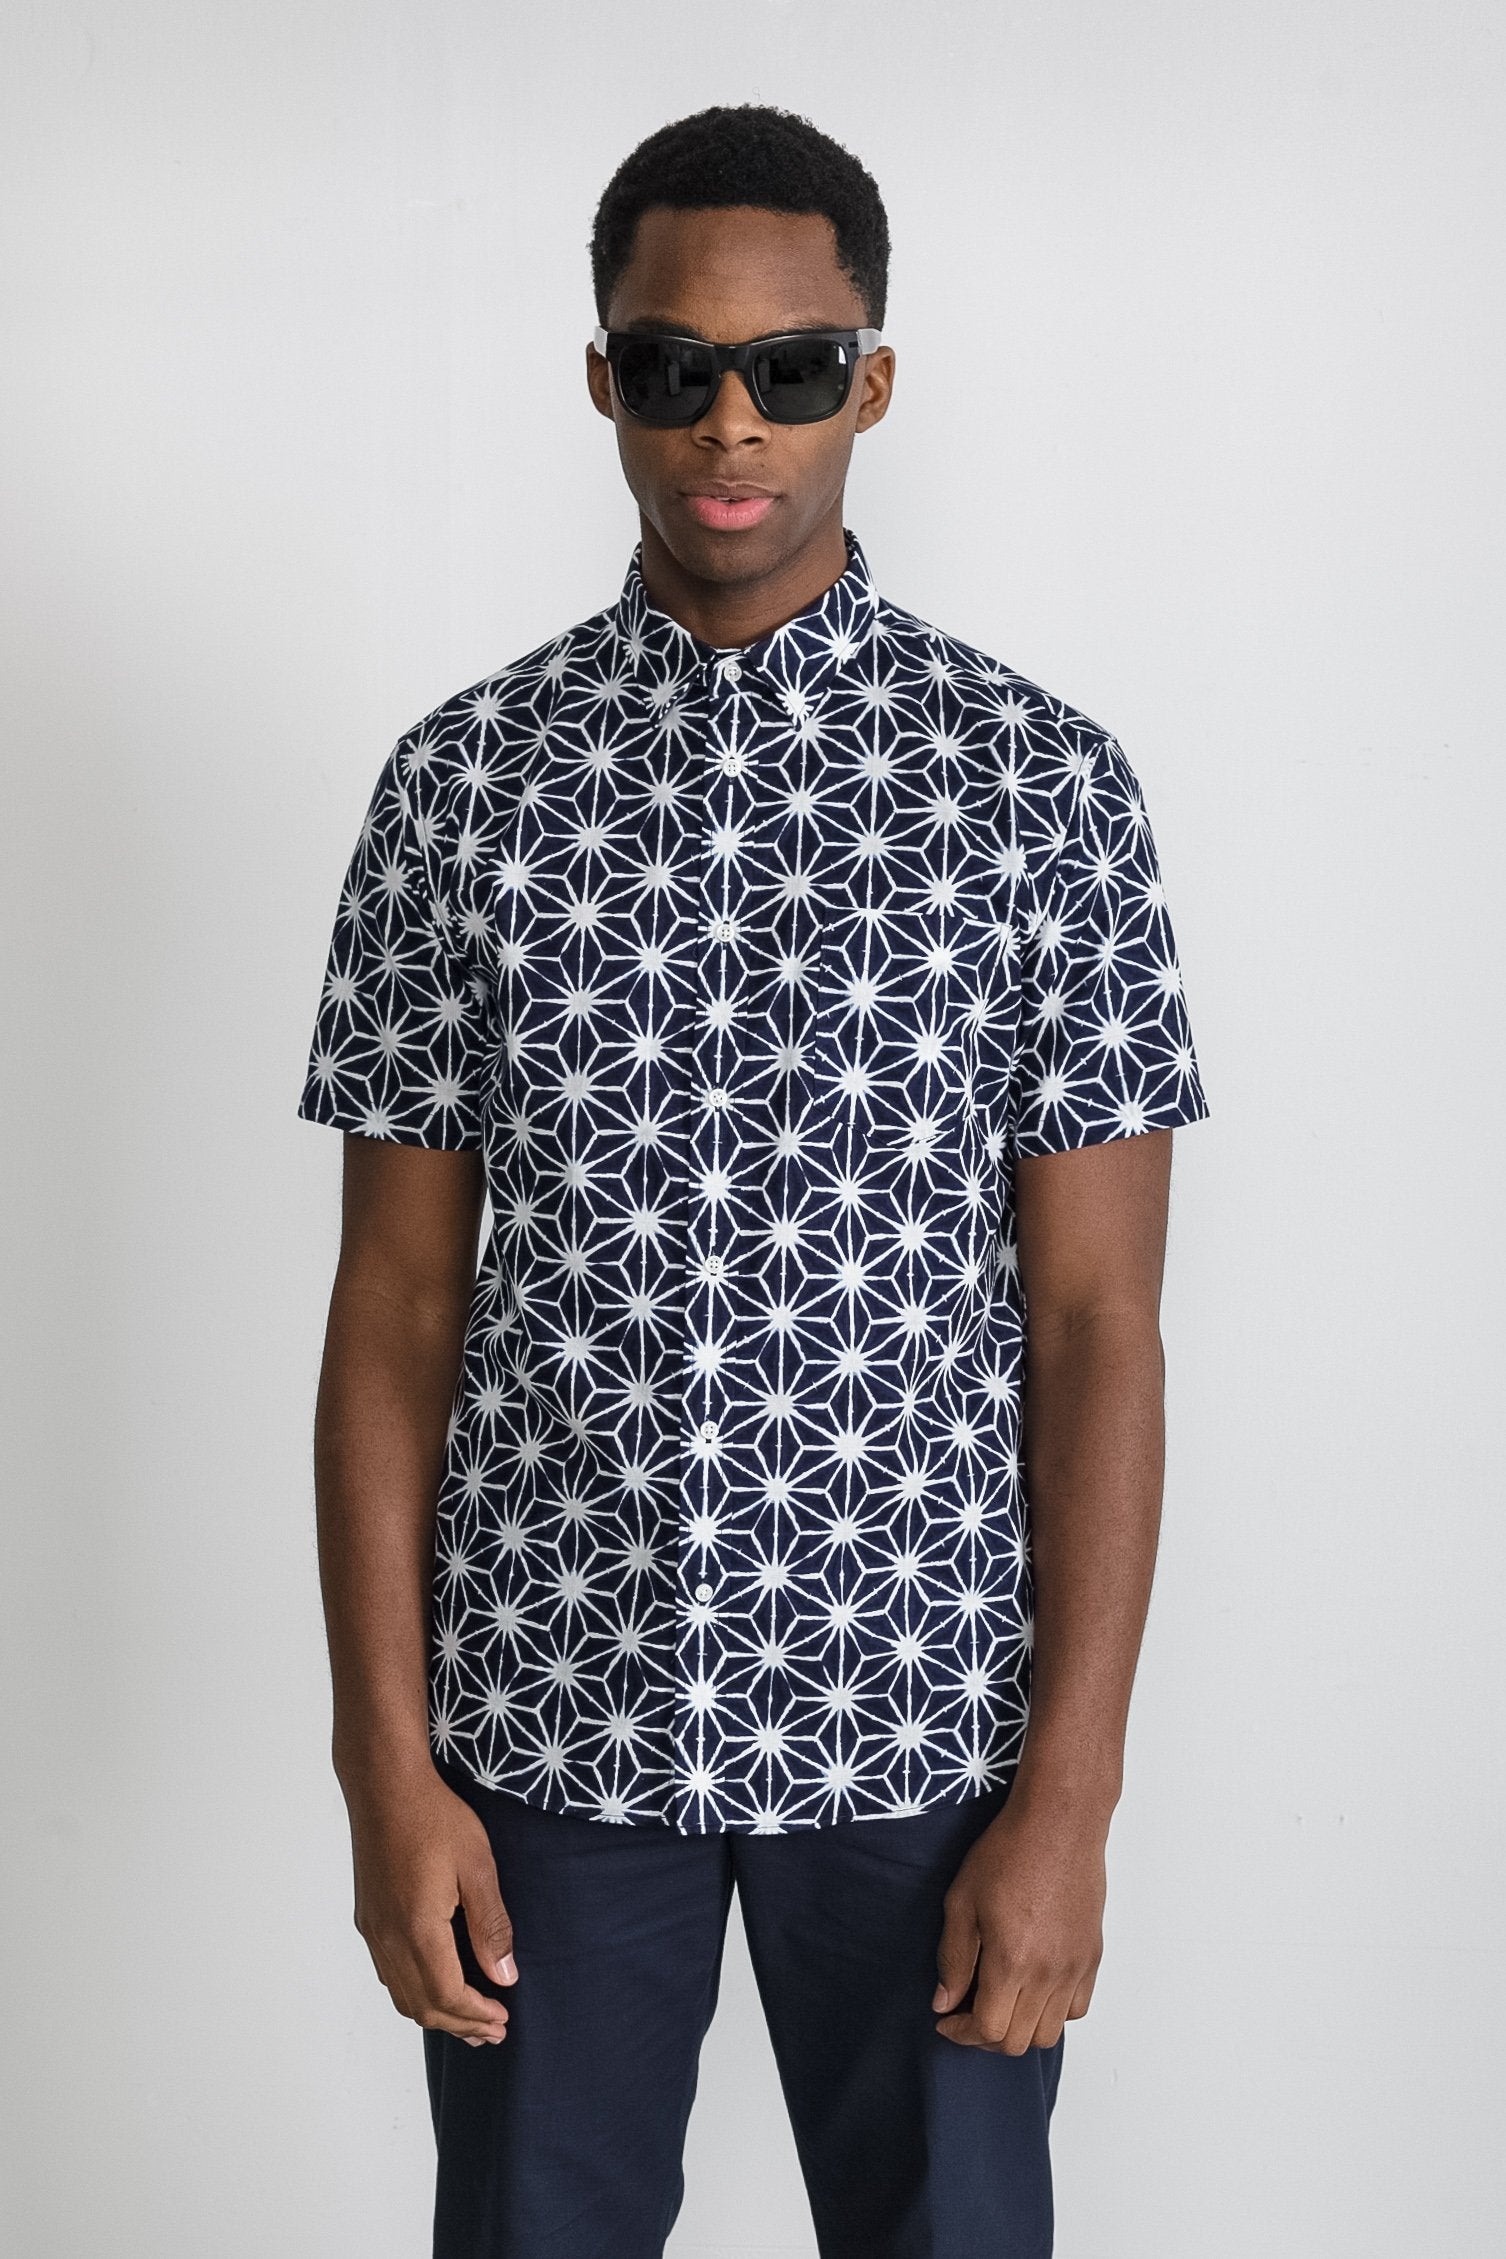 Japanese Asanoha Print in Navy and White 001